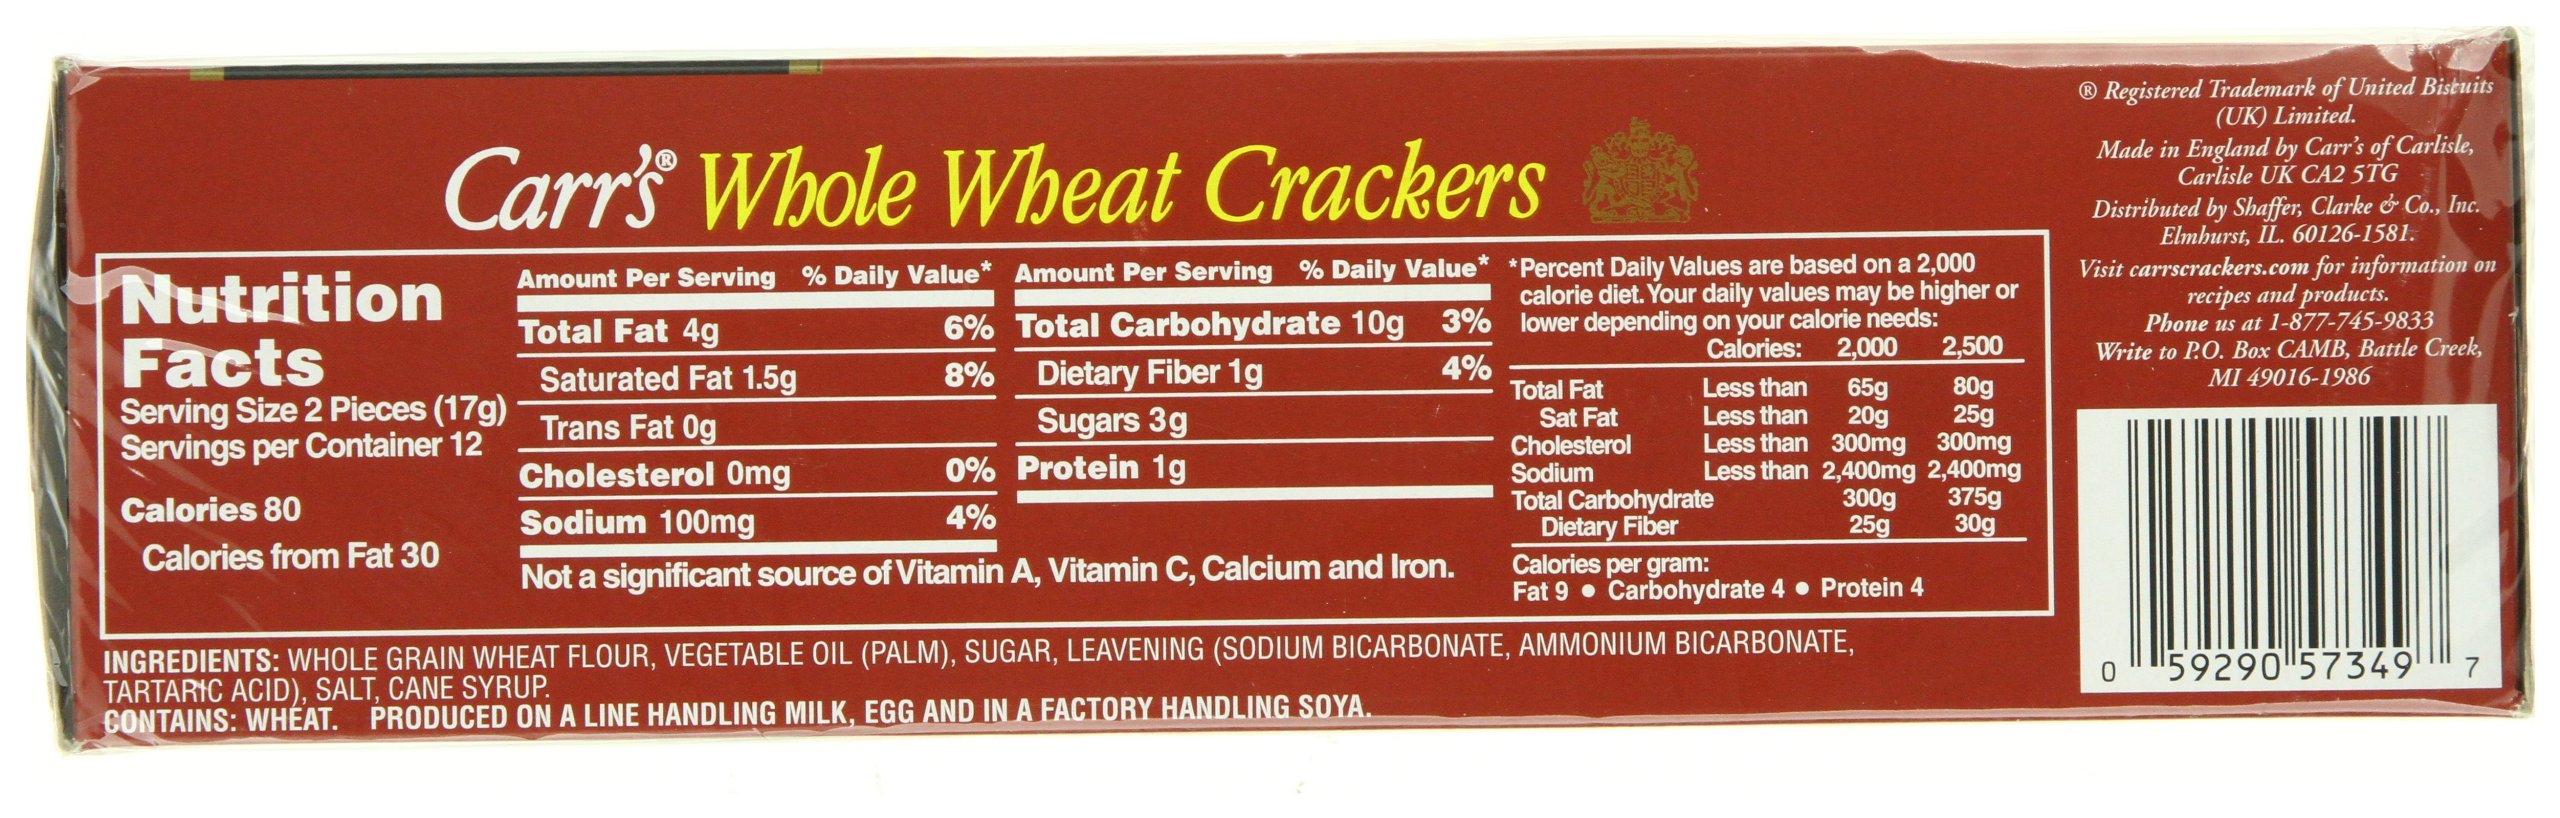 Carr's Whole Wheat Crackers, 7-Ounce Boxes (Pack of 6) by Carr's (Image #6)